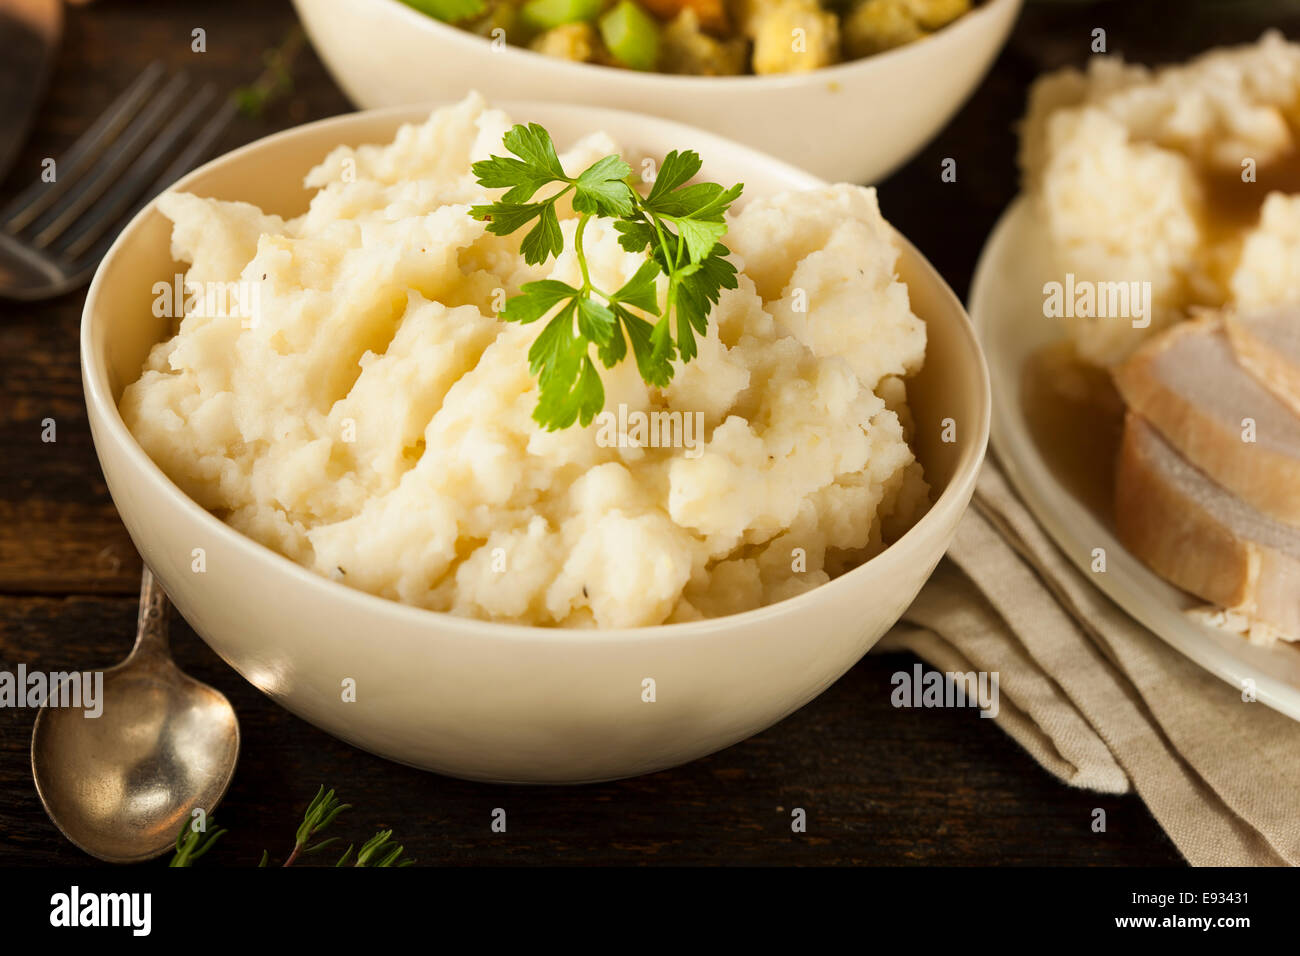 Homemade Creamy Mashed Potatoes in a Bowl - Stock Image